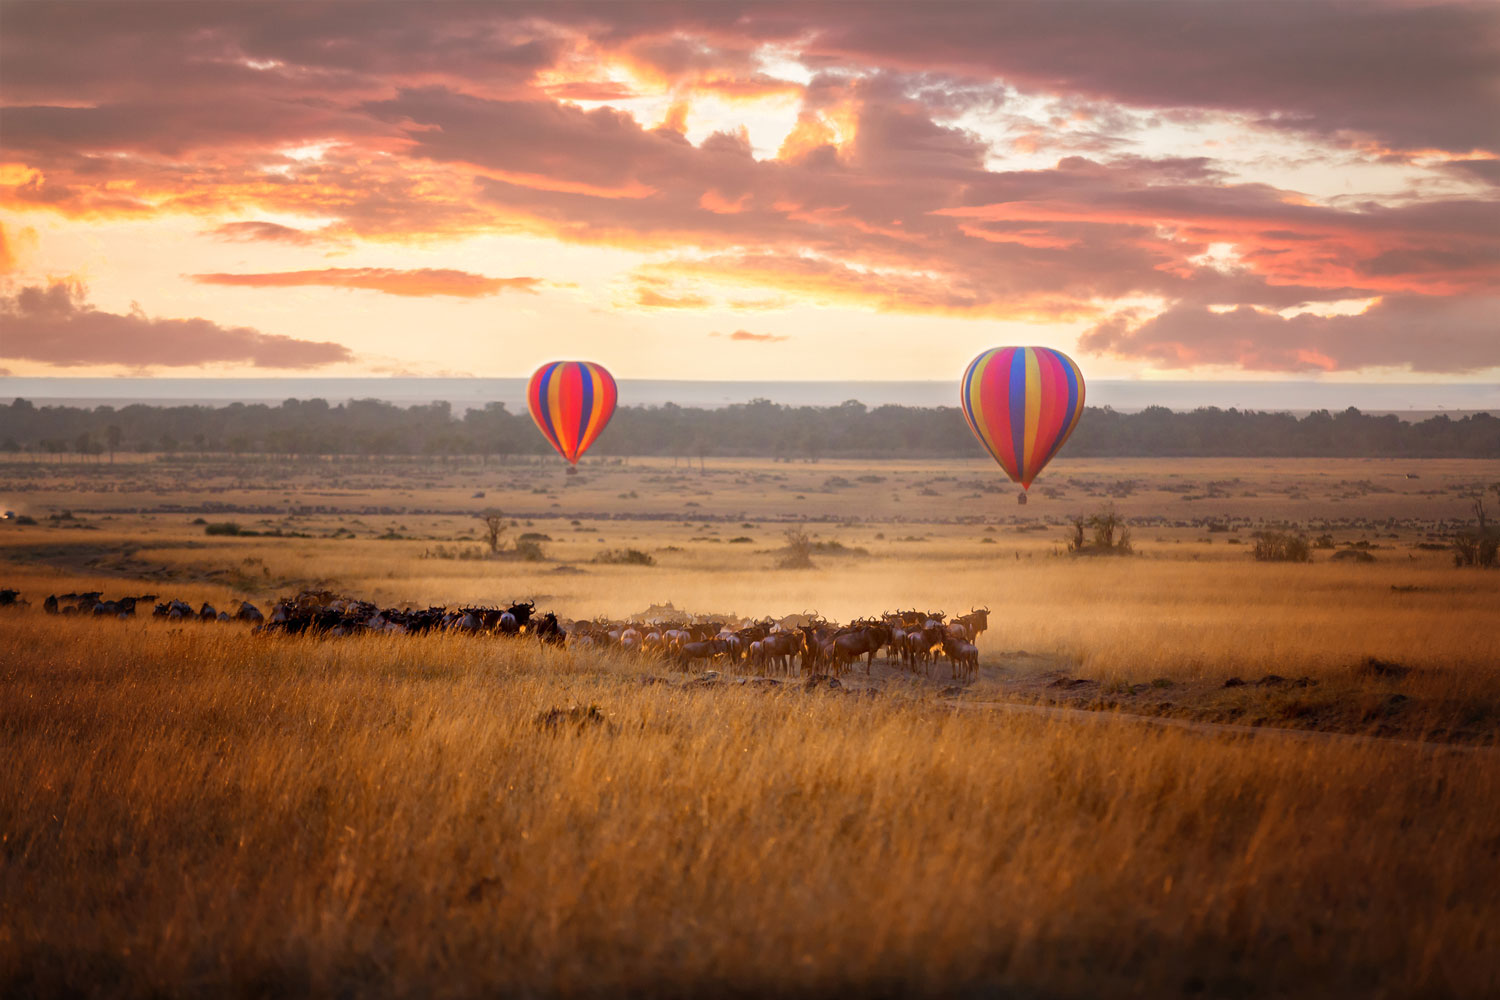 Maasai Mara sunrise safari with wildebeest and balloons